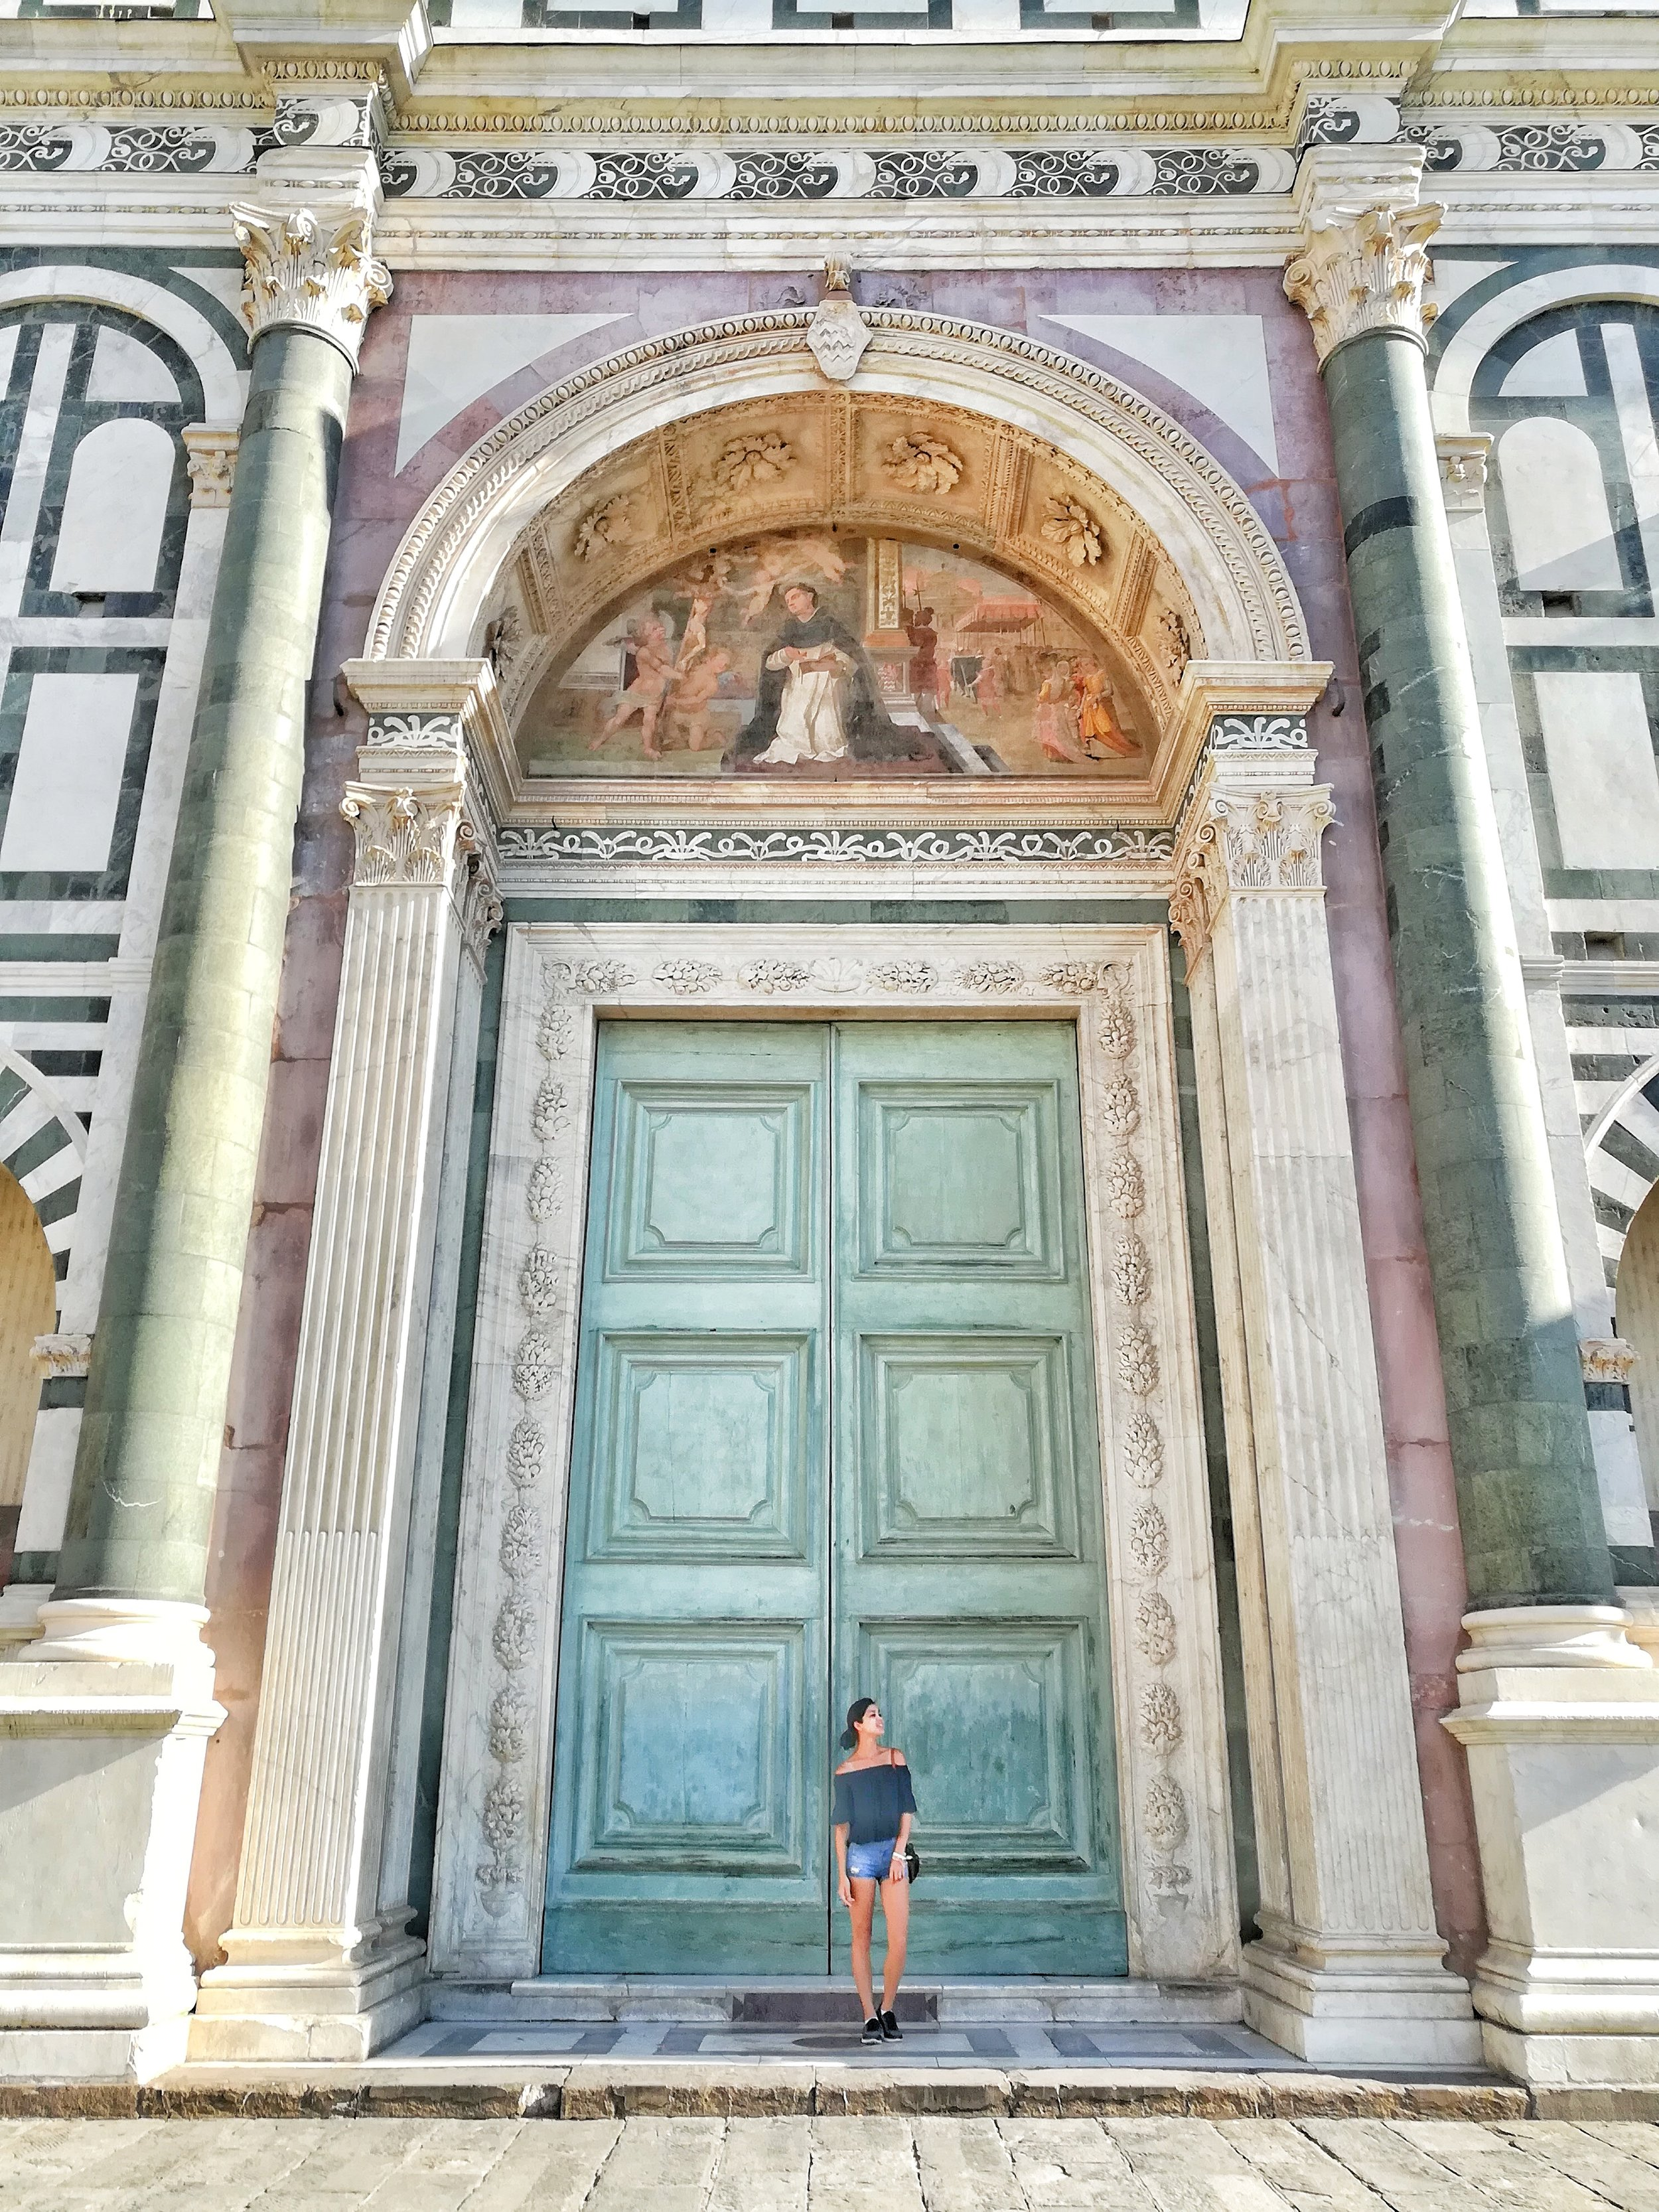 The massive beautiful door of Santa Maria Novella church (I know similar name, different building. It confused me too. They must really like Santa Maria )